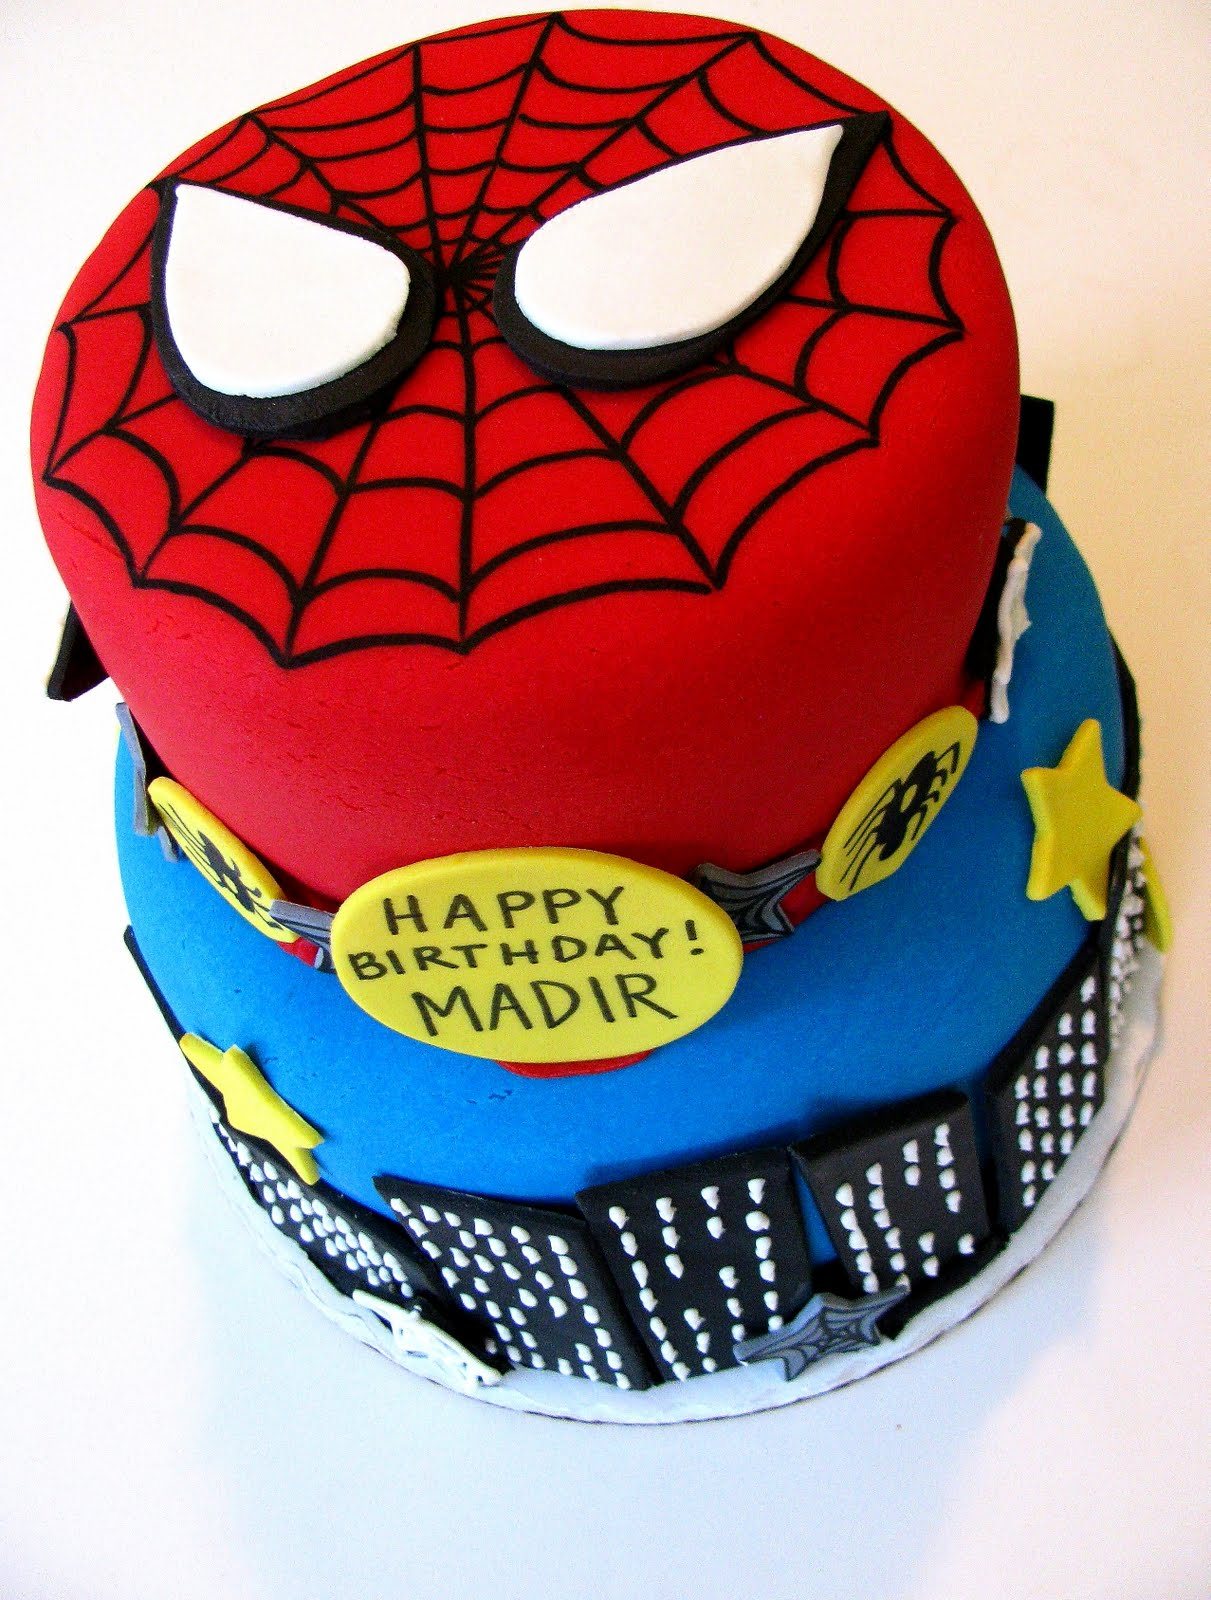 spiderman template for cake - spider man cake template search results calendar 2015